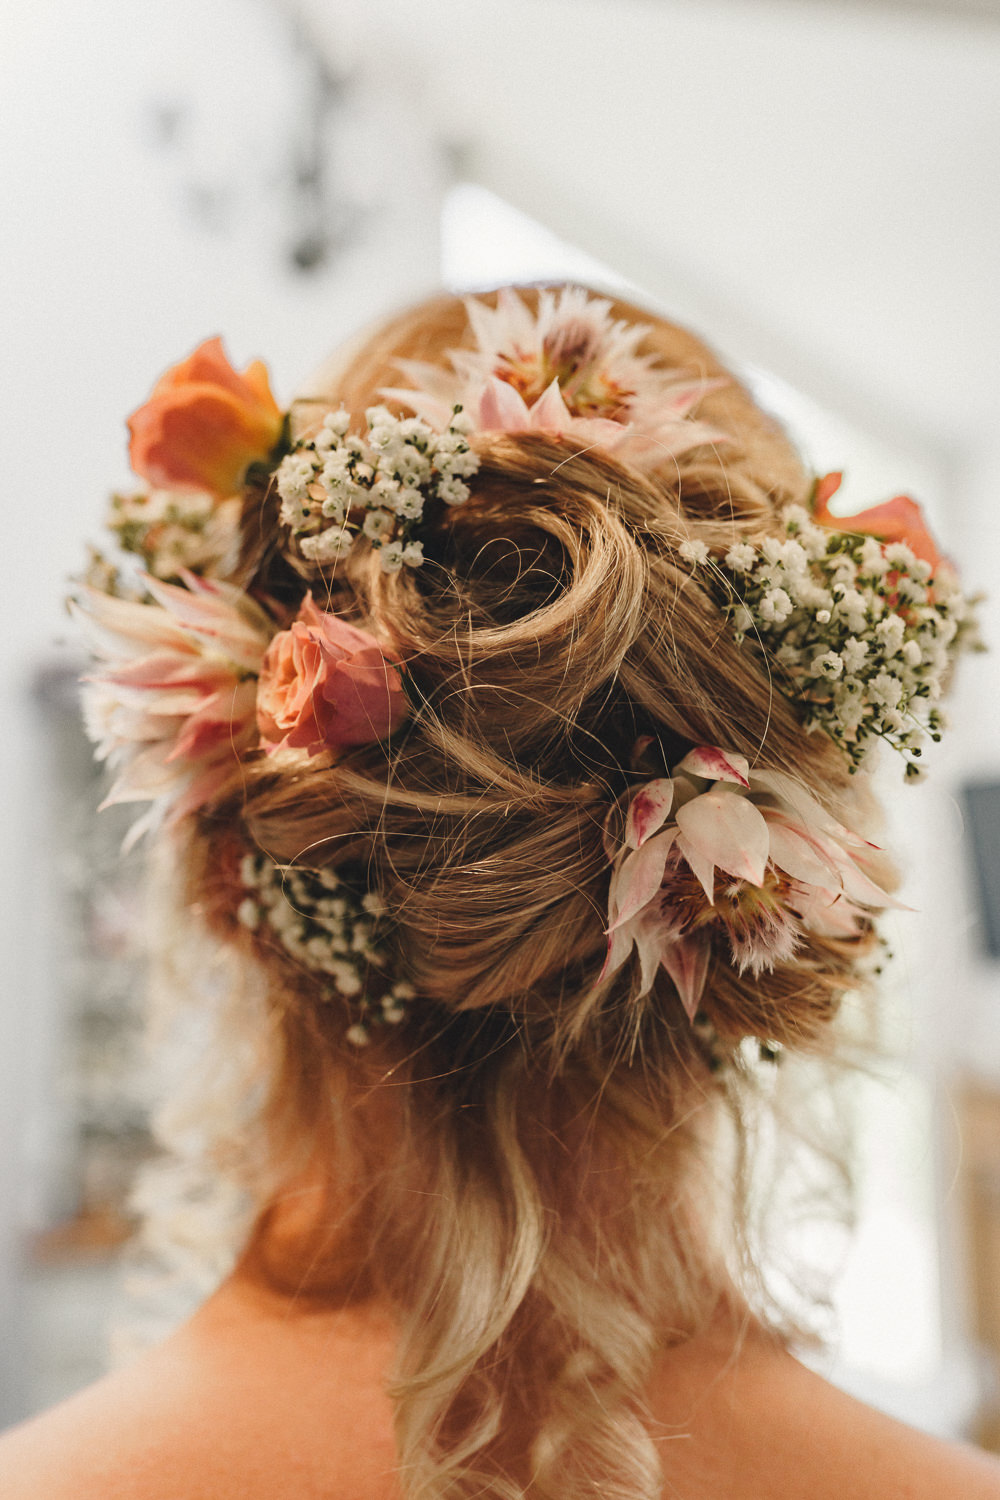 Hair Style Up Do Bride Bridal Flowers Marquee Wedding Home The Chamberlins